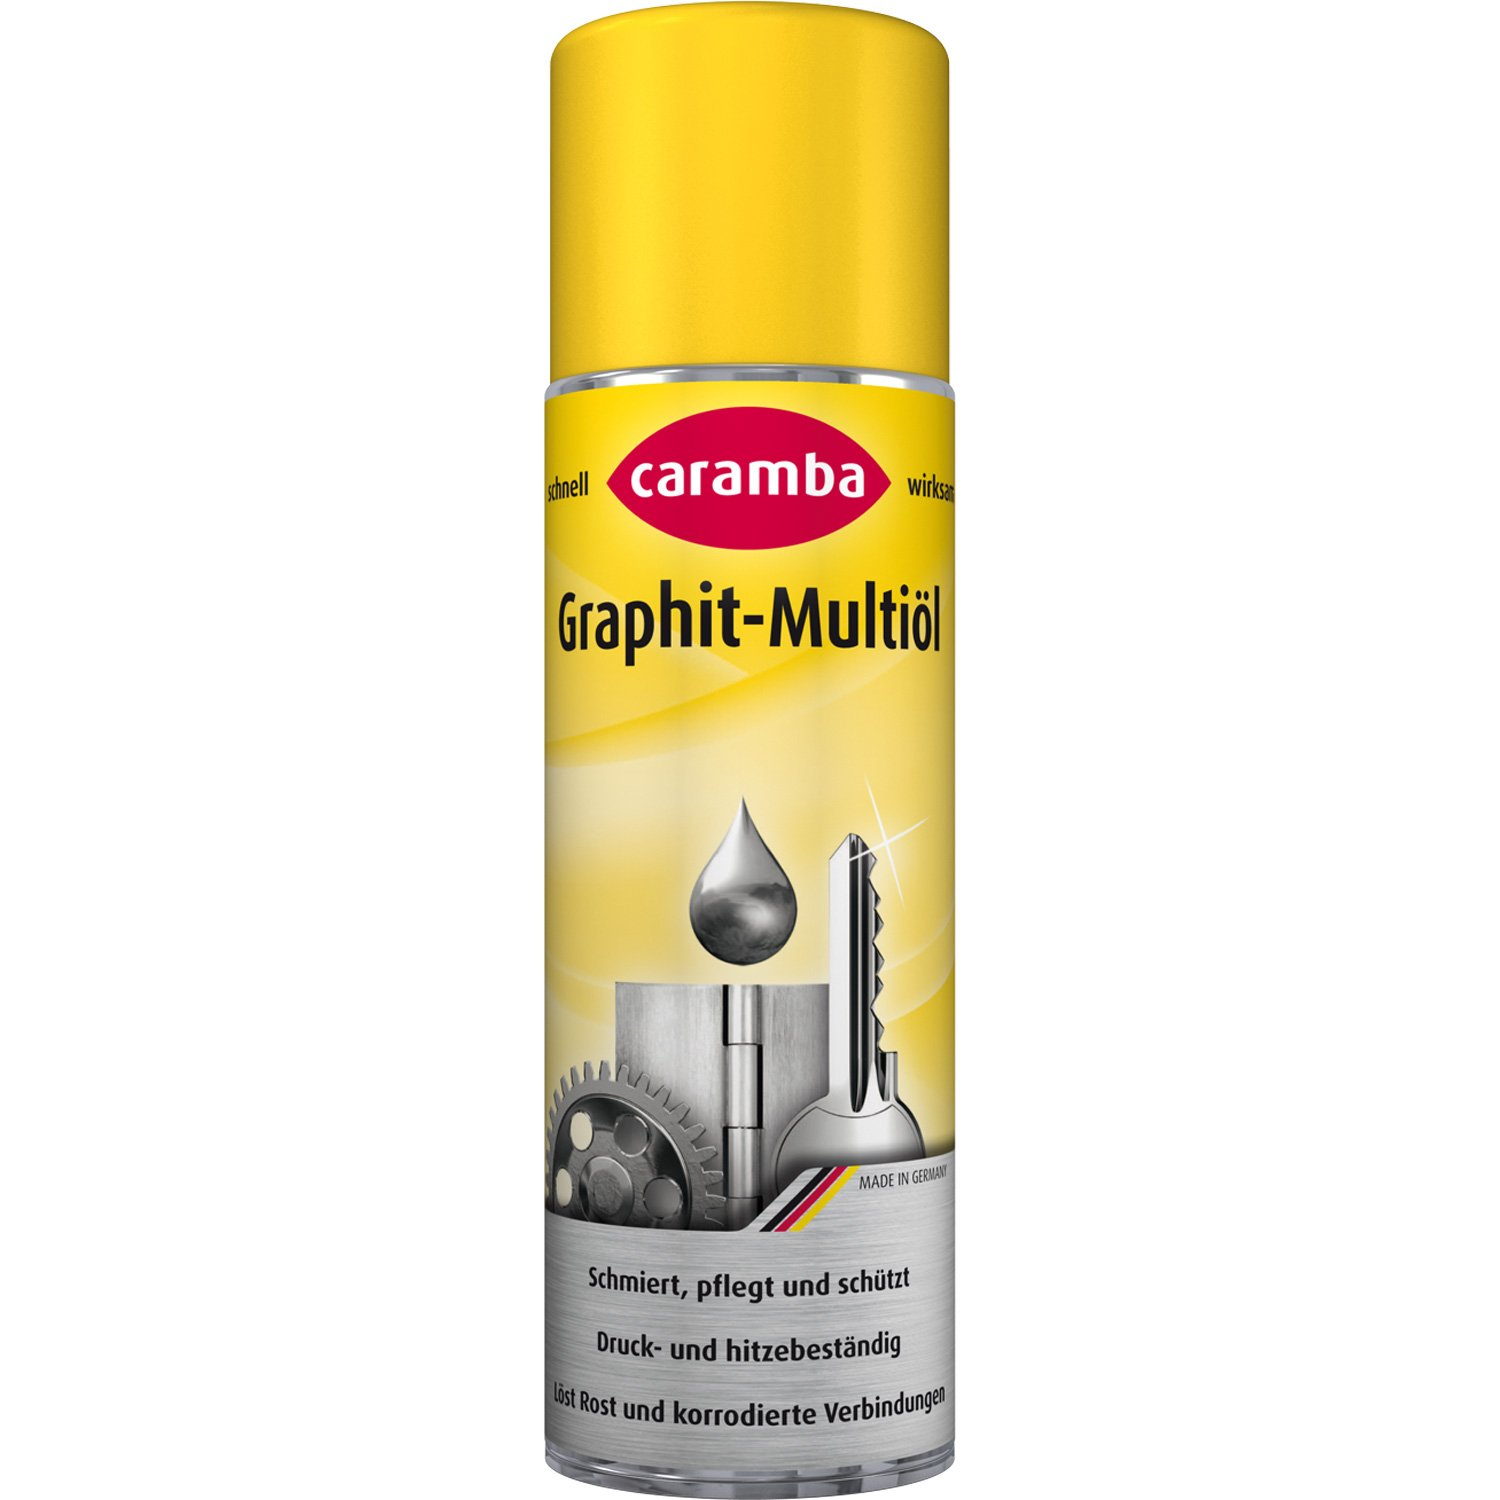 Caramba 600302 Graphit-Multiö l, 300 ml B008LU6HPS